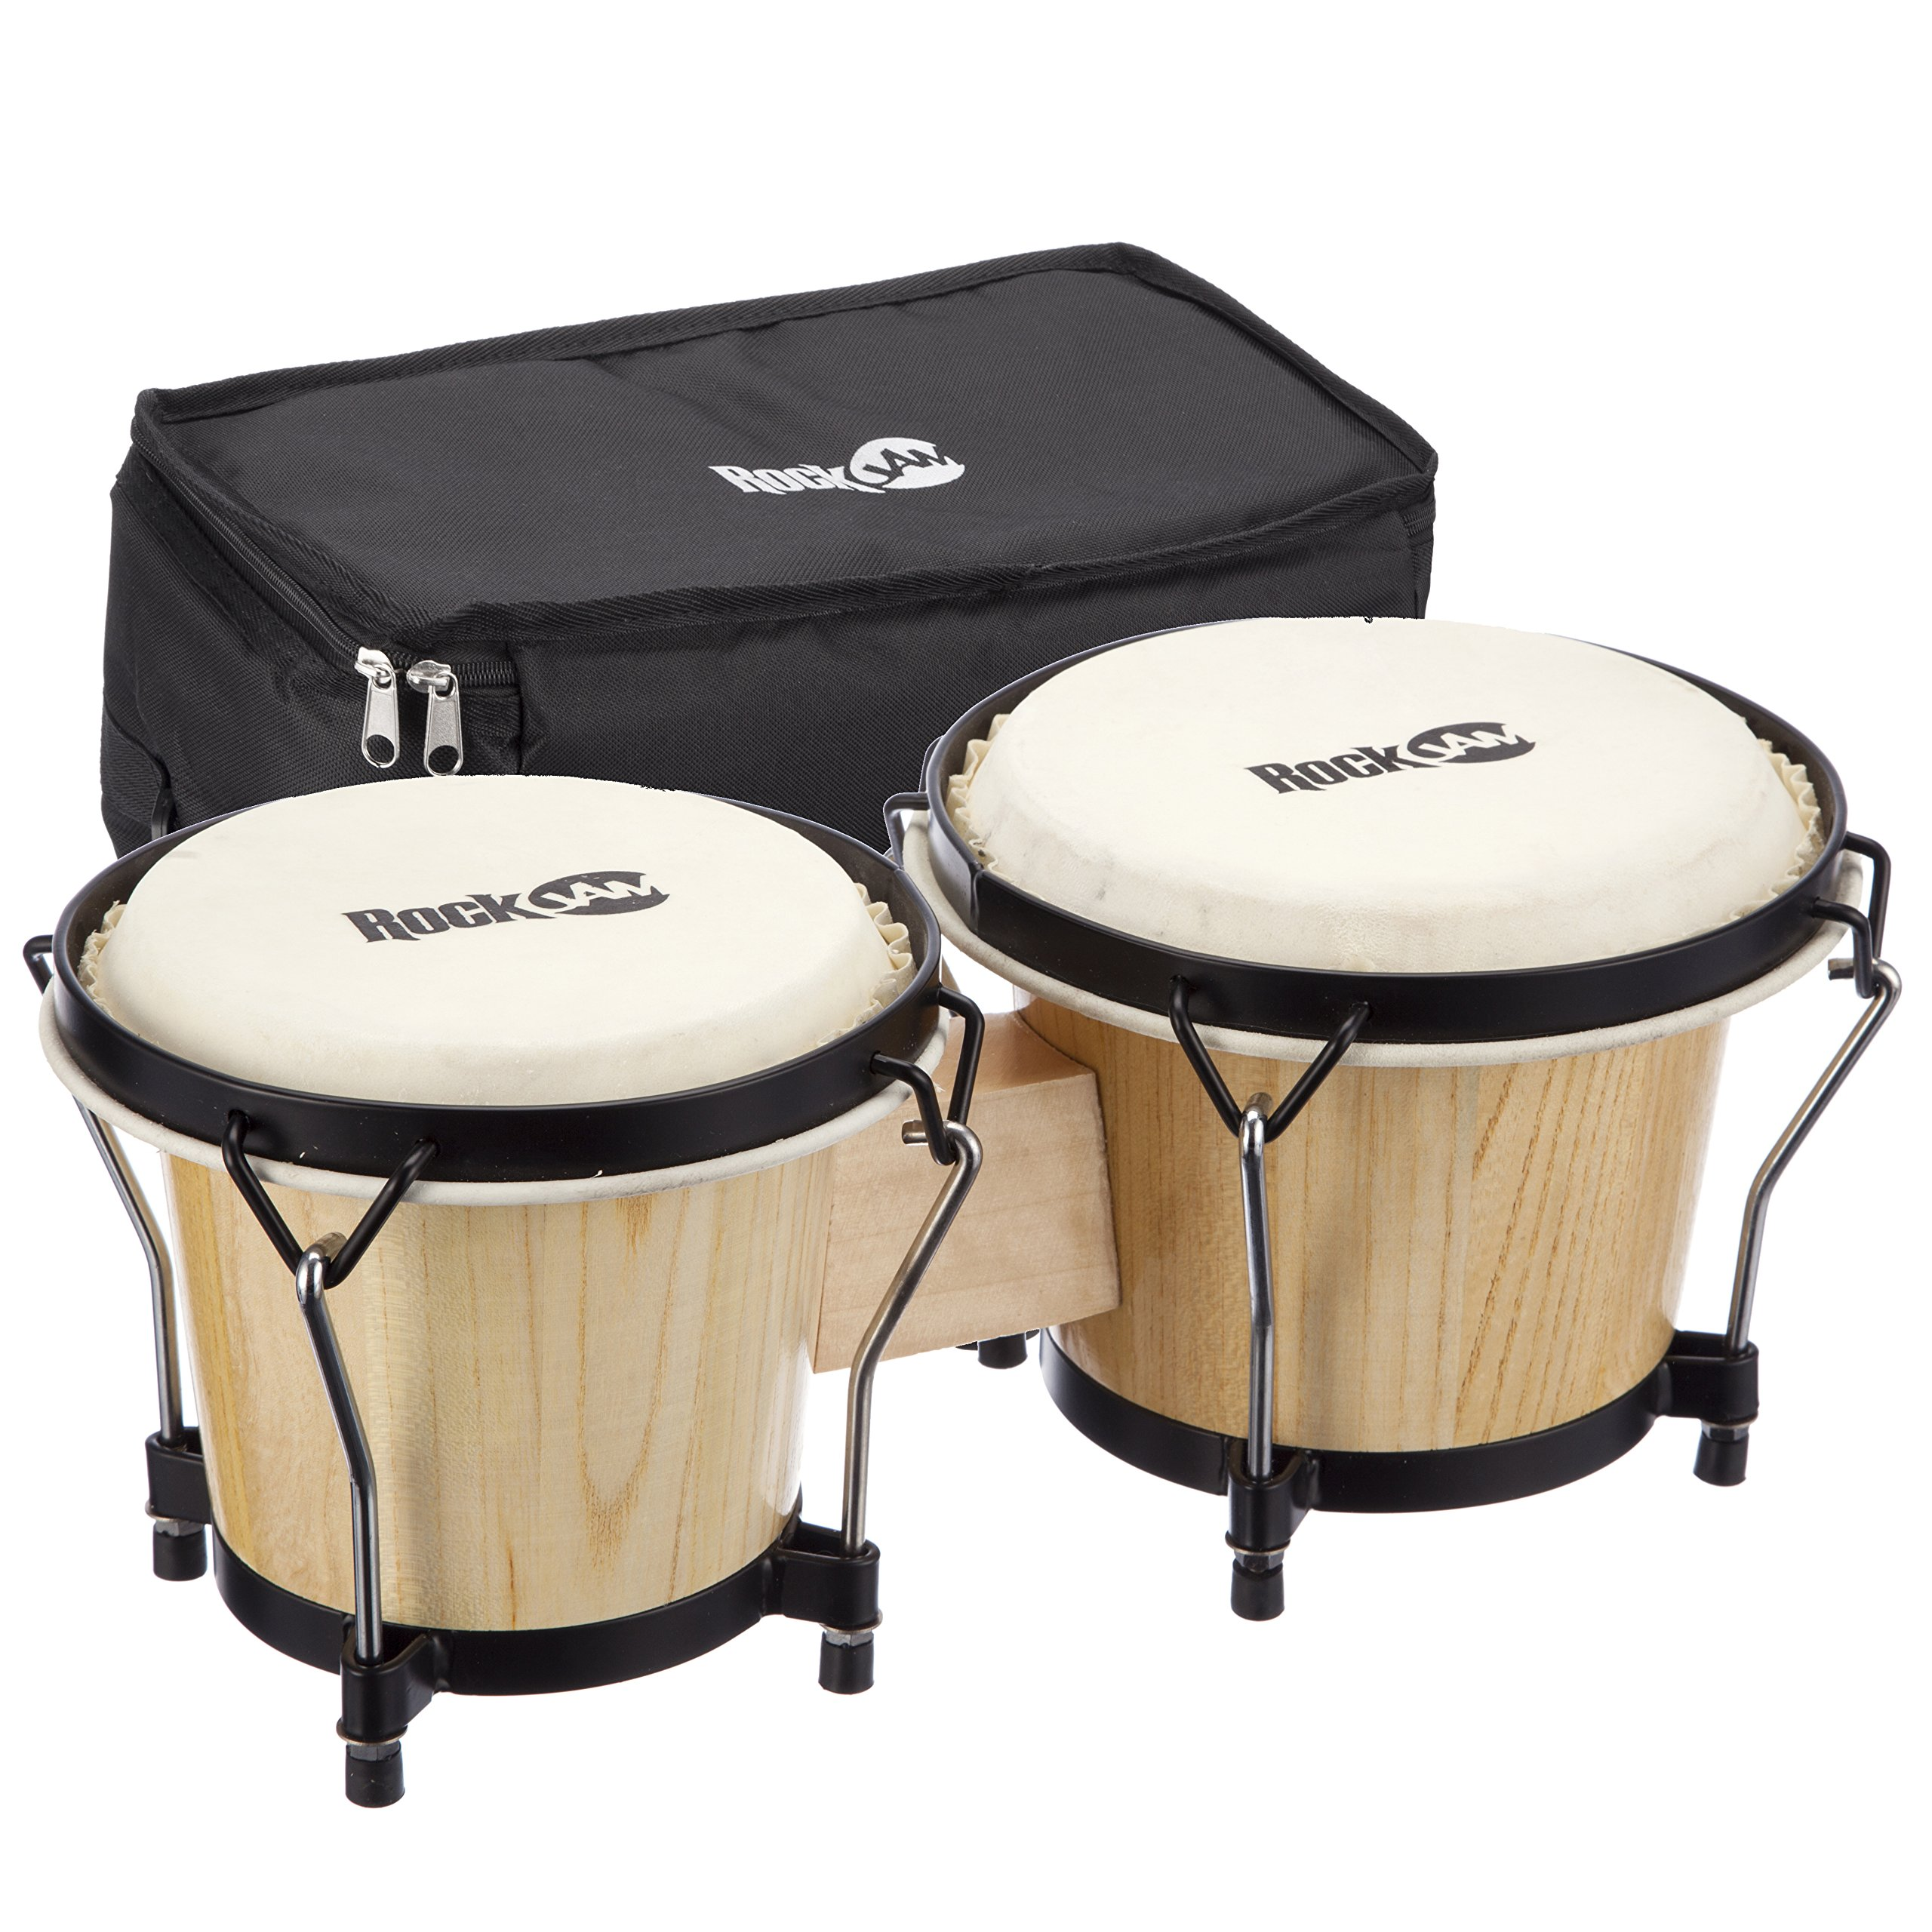 RockJam 7'' and 8'' Bongo Drum Set with Padded Bag and Tuning Key, Natural by RockJam